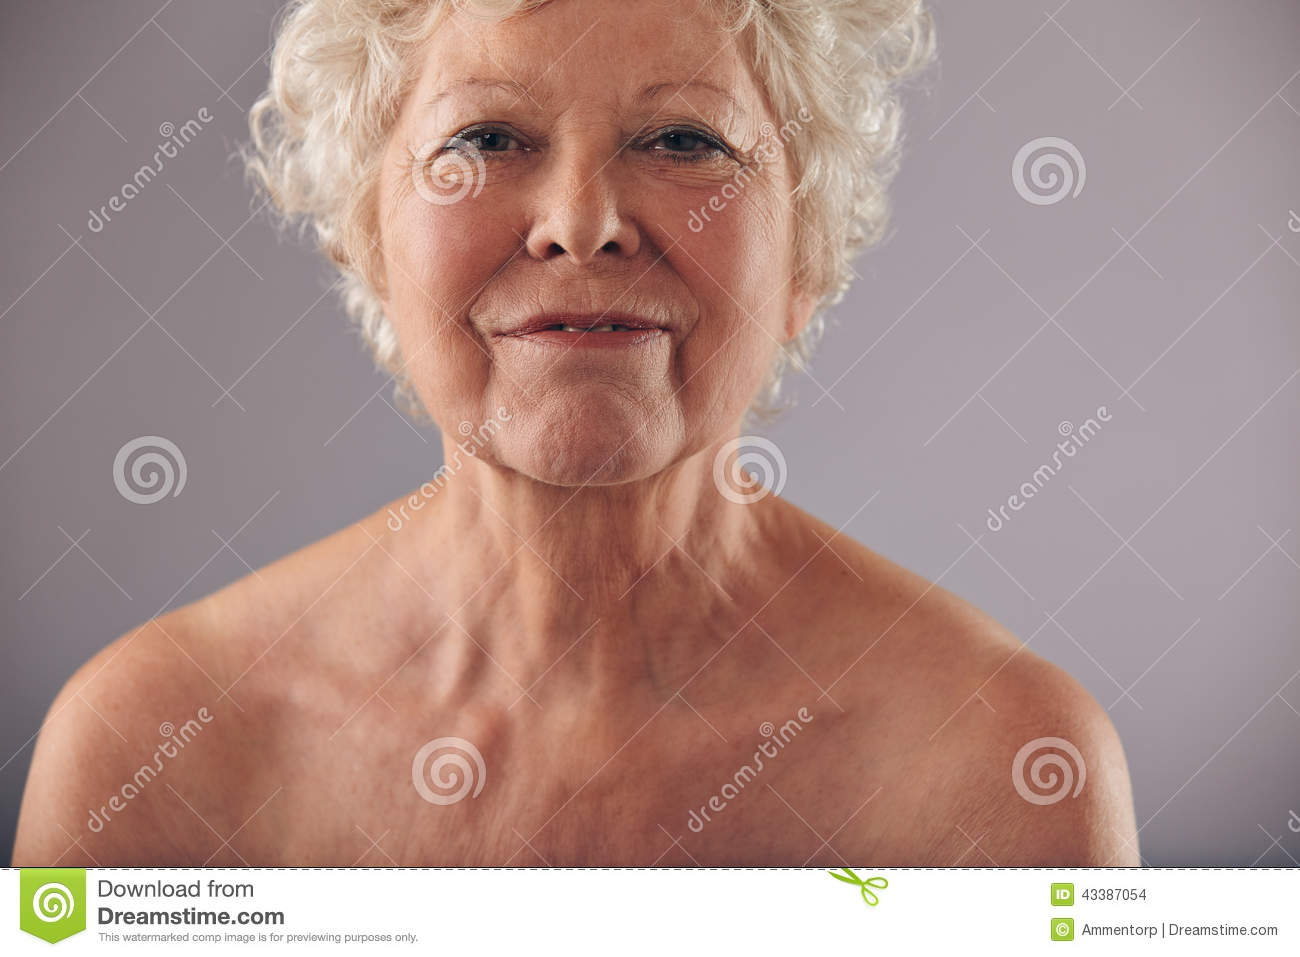 from Miles an elderly woman naked